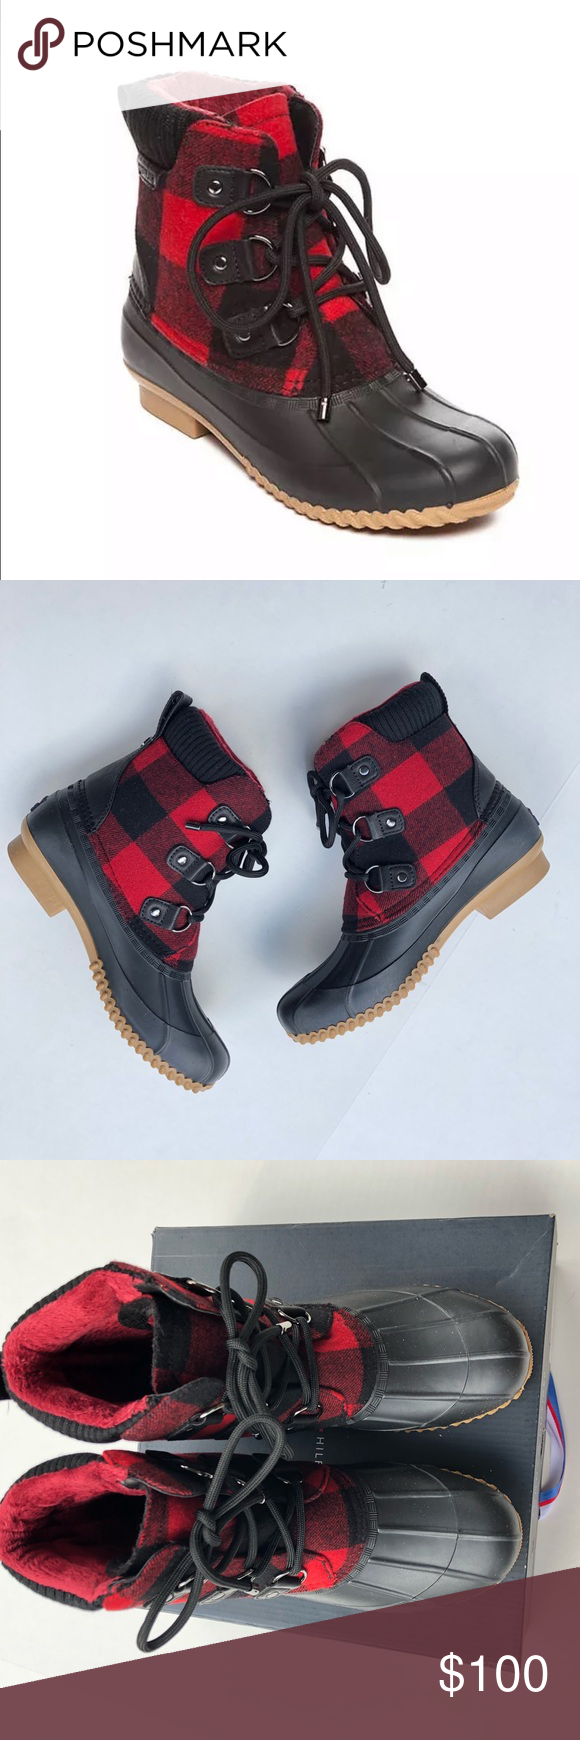 5235f6184ea Tommy Hilfiger Duck Boots Tommy Hilfiger Duck Boots Red and Black ...